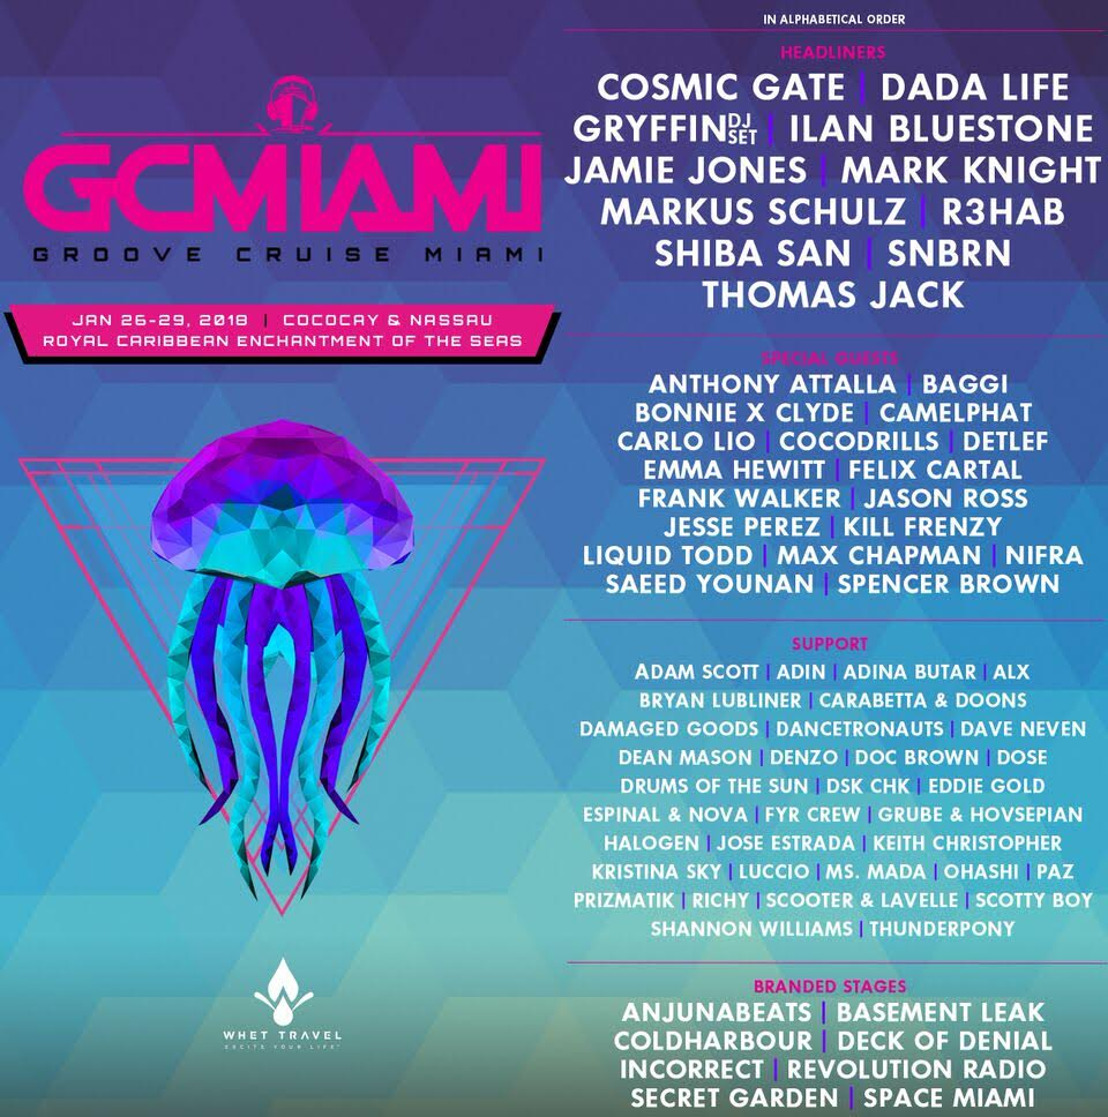 Groove Cruise Announces 2018 Phase Two Lineup For Miami Sailing - January 26-29th